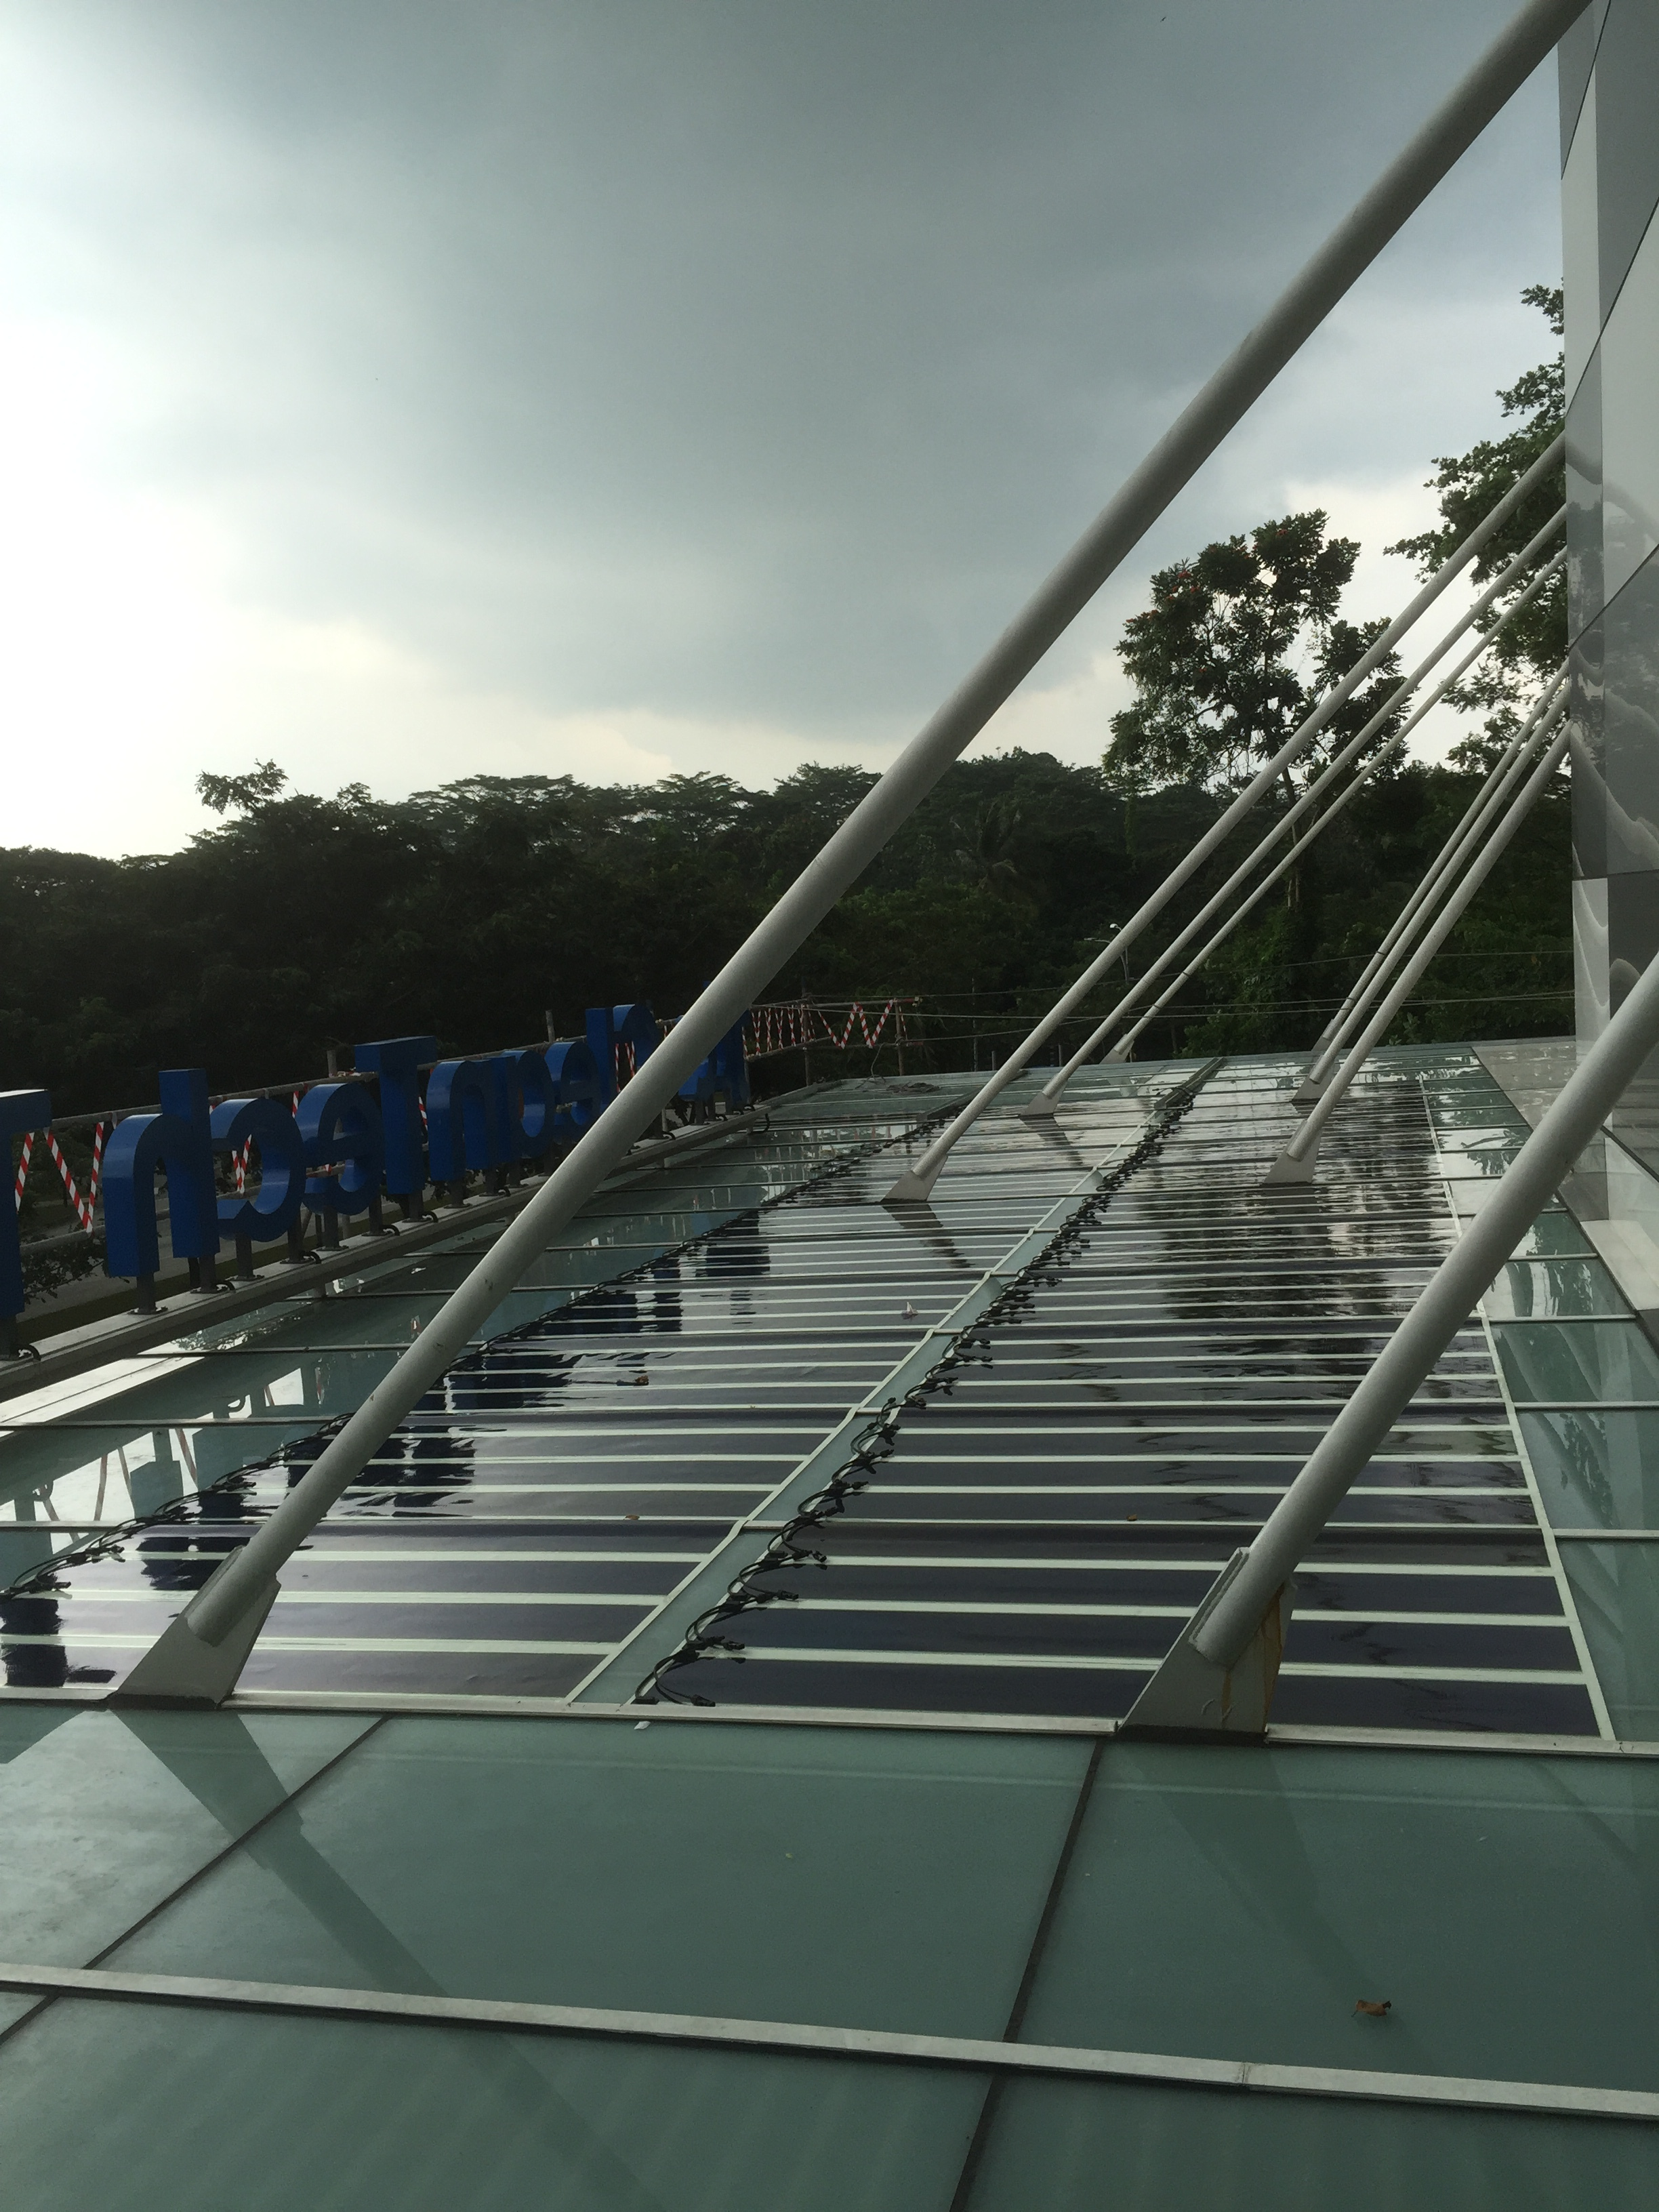 Organic solar photovoltaic (OPV) panels mounted on glass roof